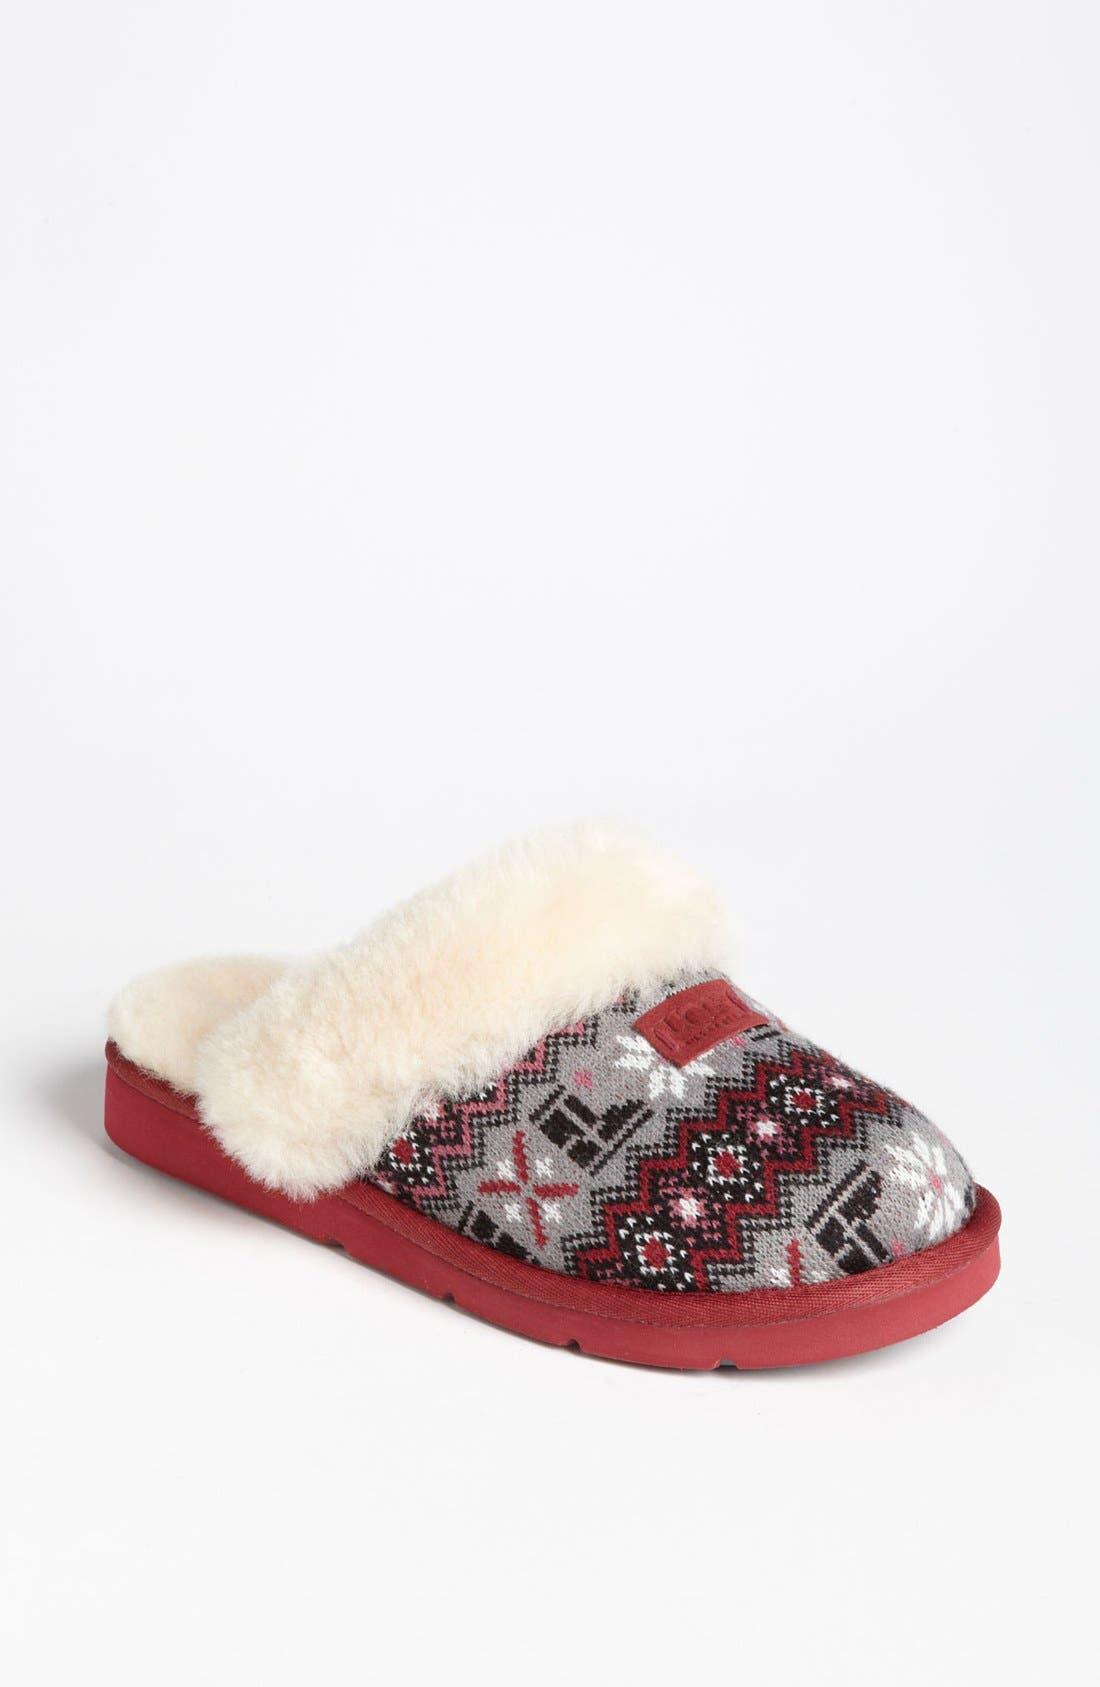 Alternate Image 1 Selected - UGG® Australia 'Cozy Nordic Knit' Slipper (Women)